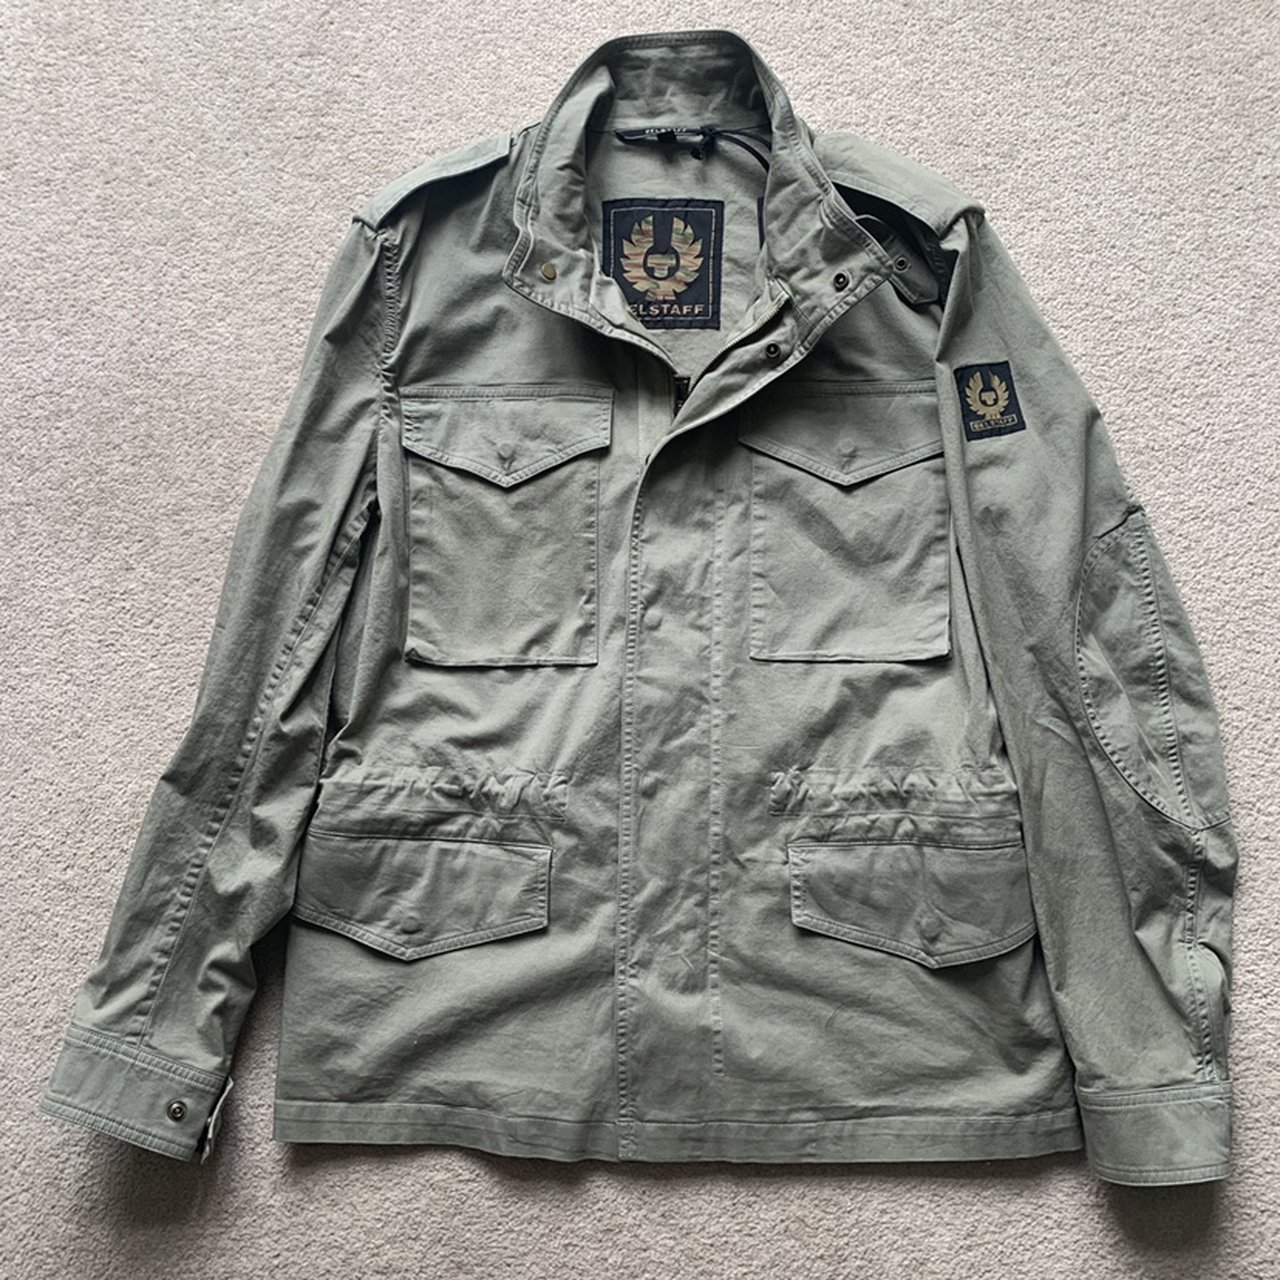 Belstaff Green Cotton Field Jacket New With Tags Perfect